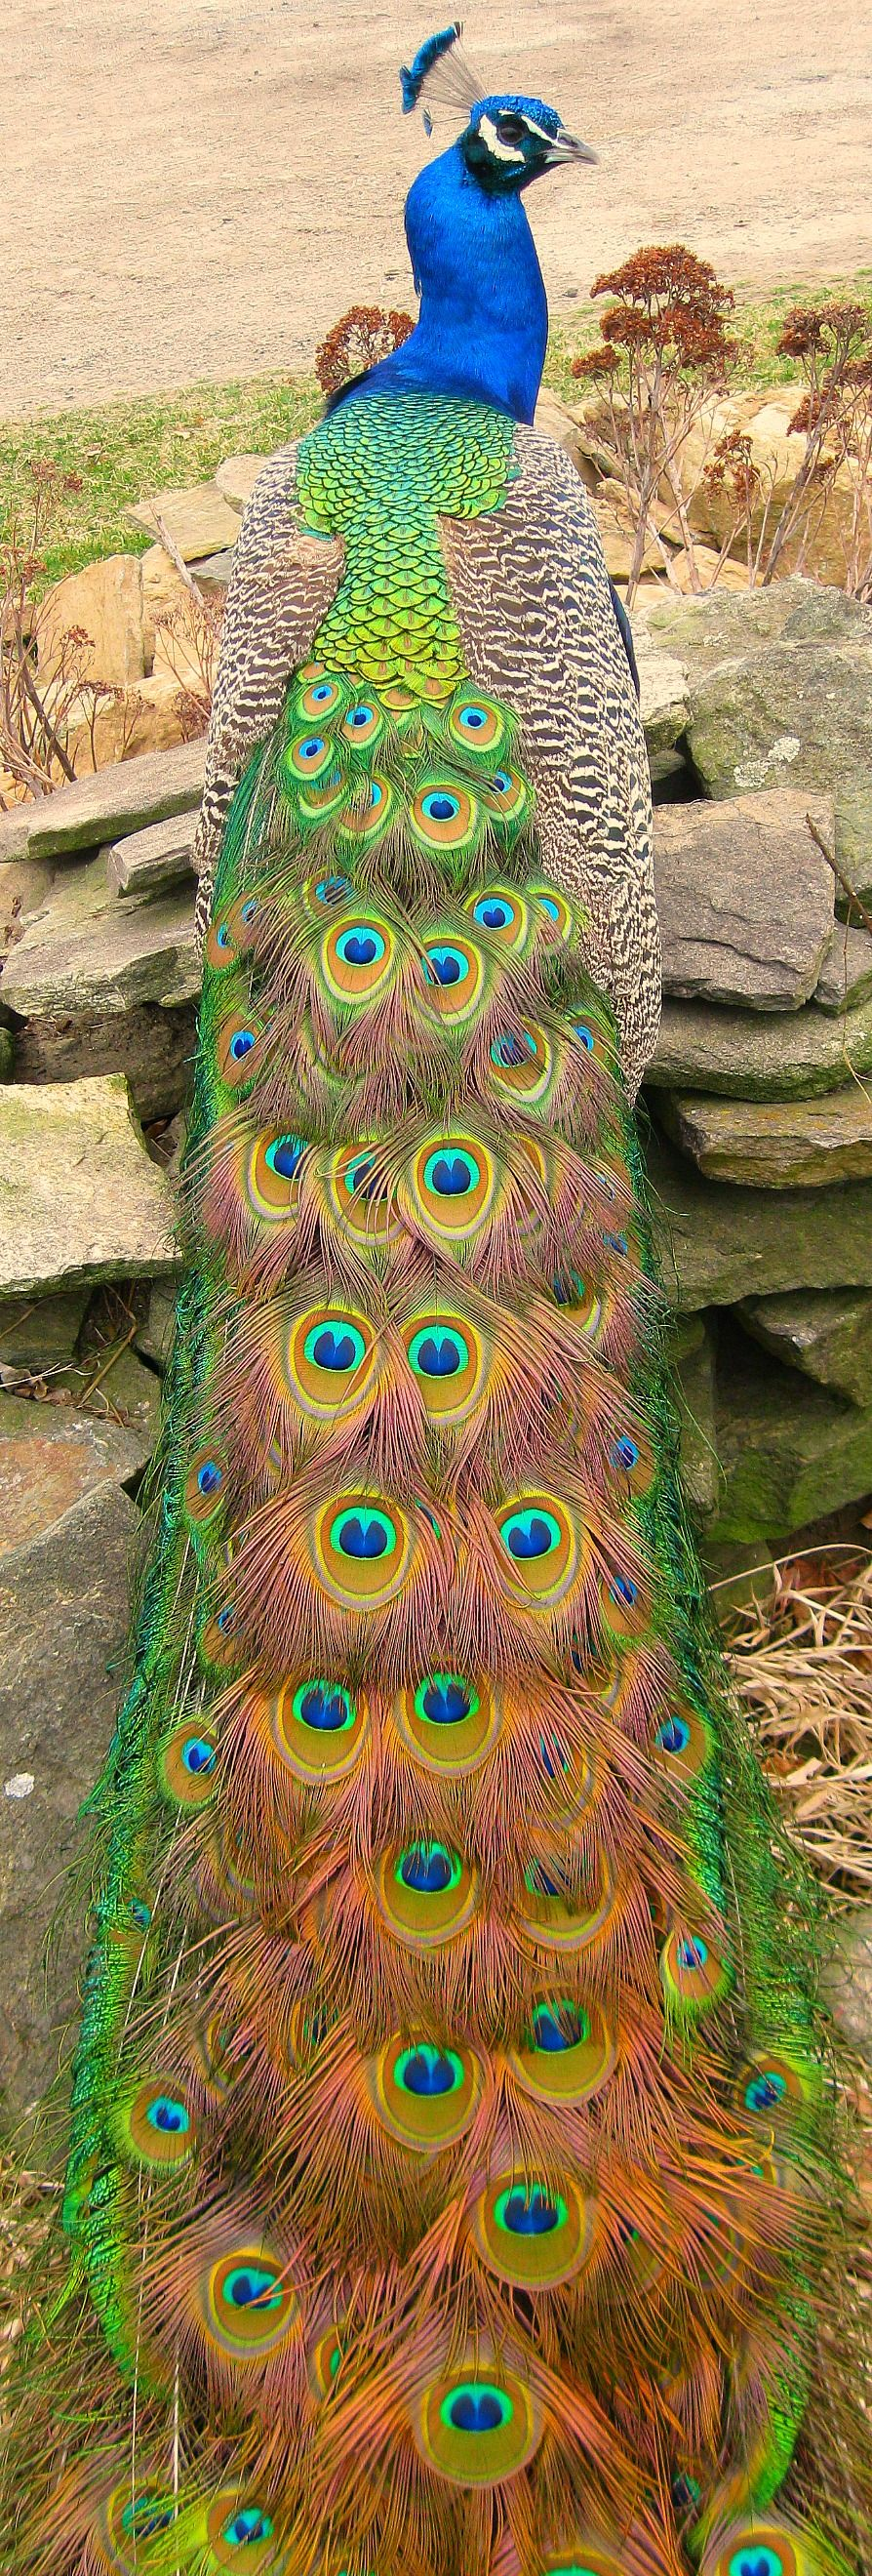 Beautiful peacock with full tail feathers peacock stuff beautiful birds animals - Beautiful peacock feather ...